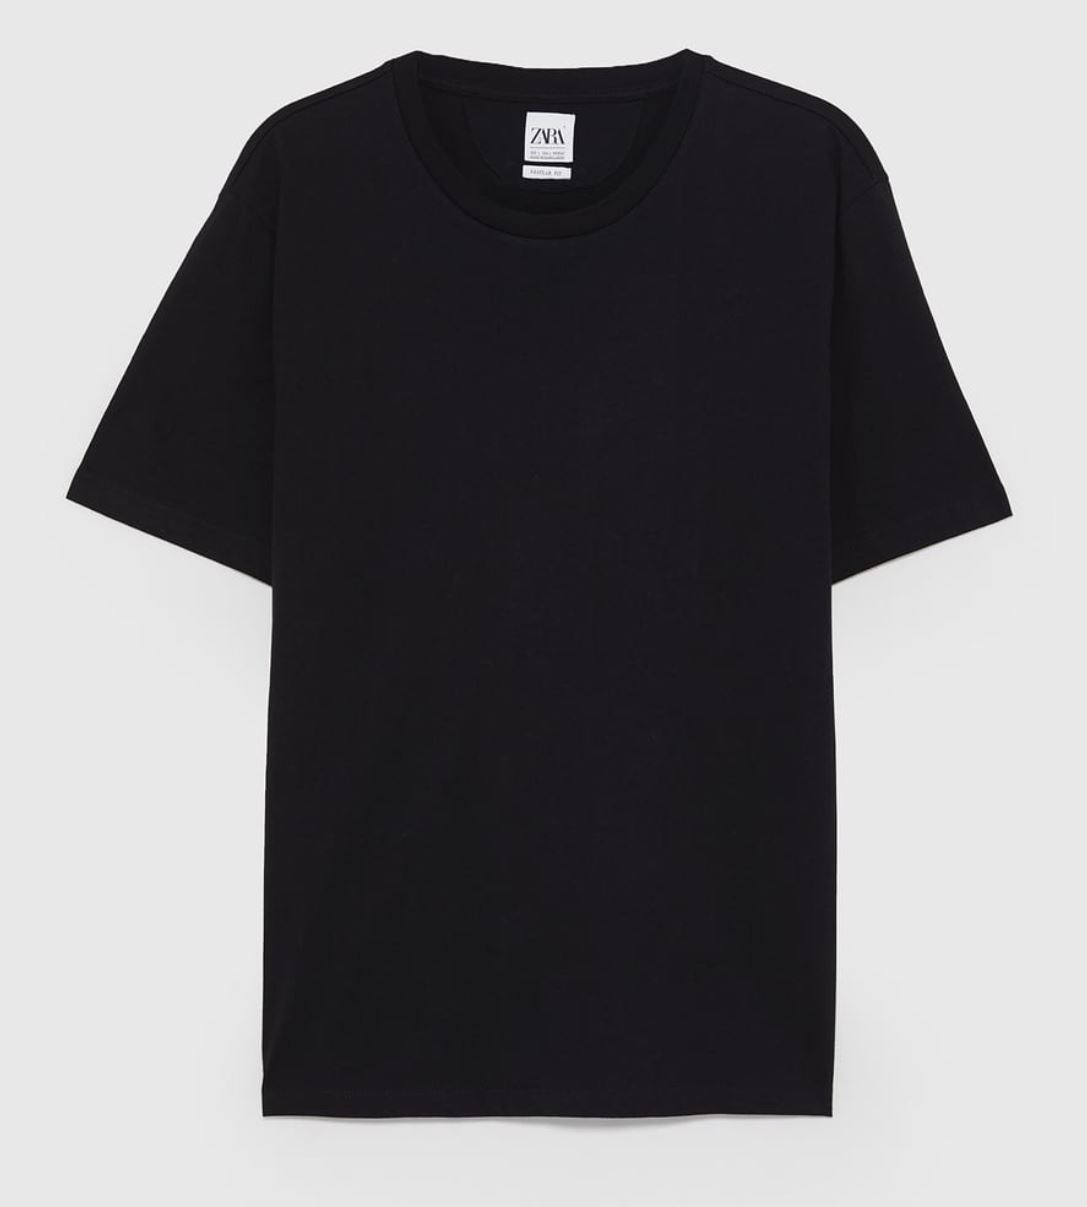 Black T-Shirt from zara.com